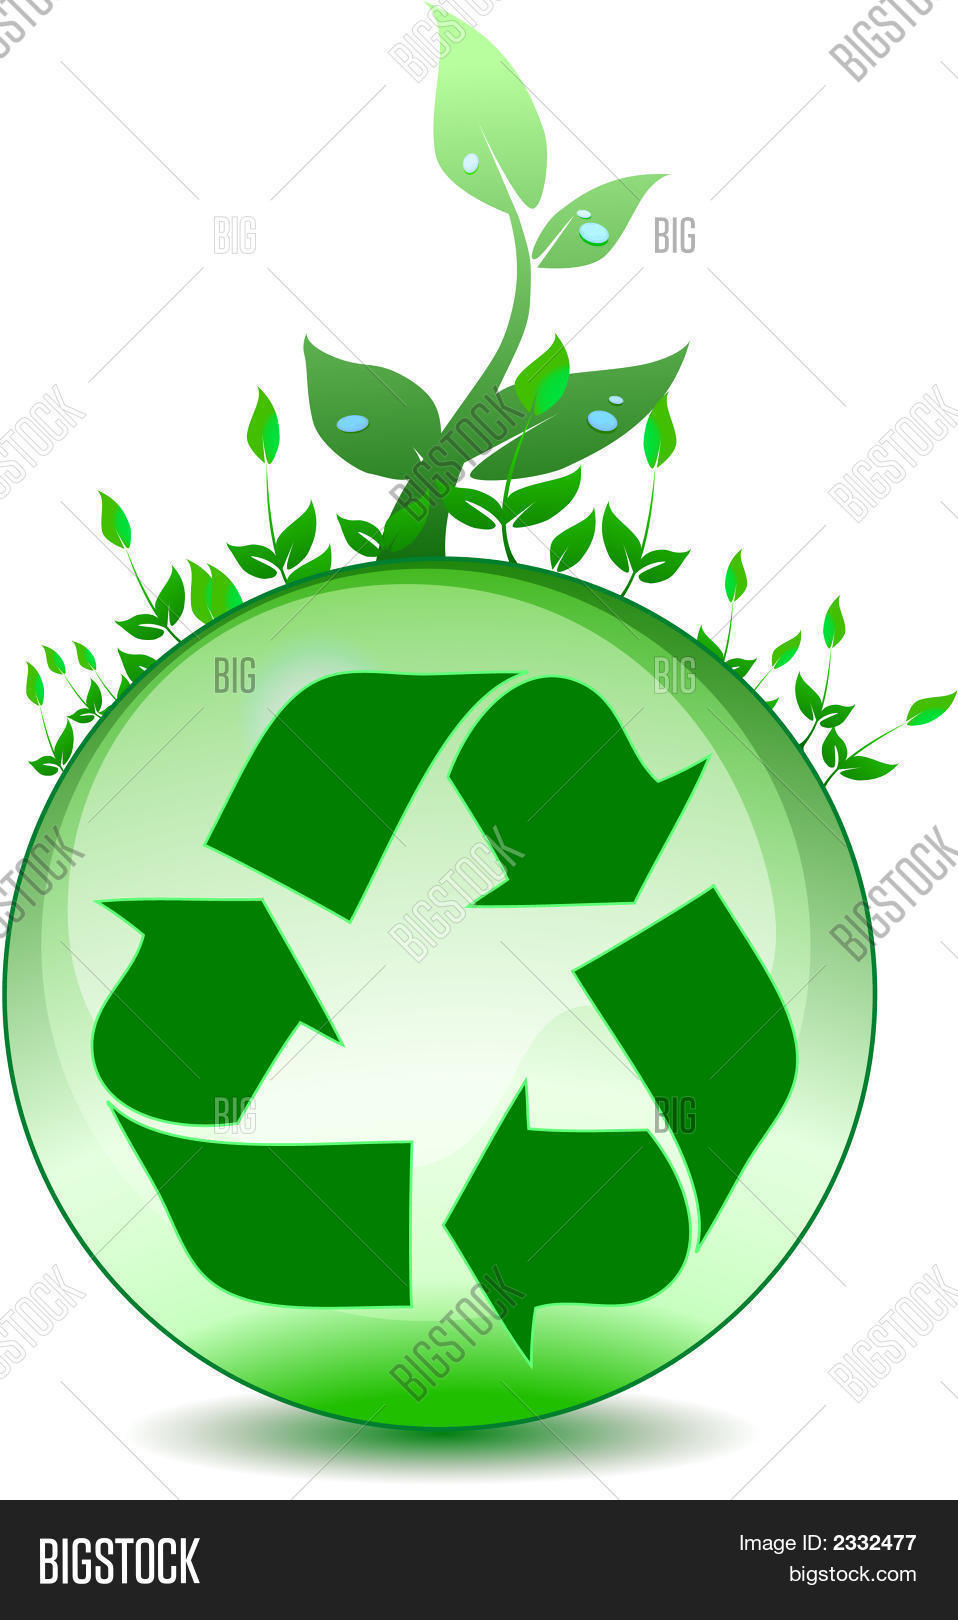 Recycling Symbol On Image Photo Free Trial Bigstock